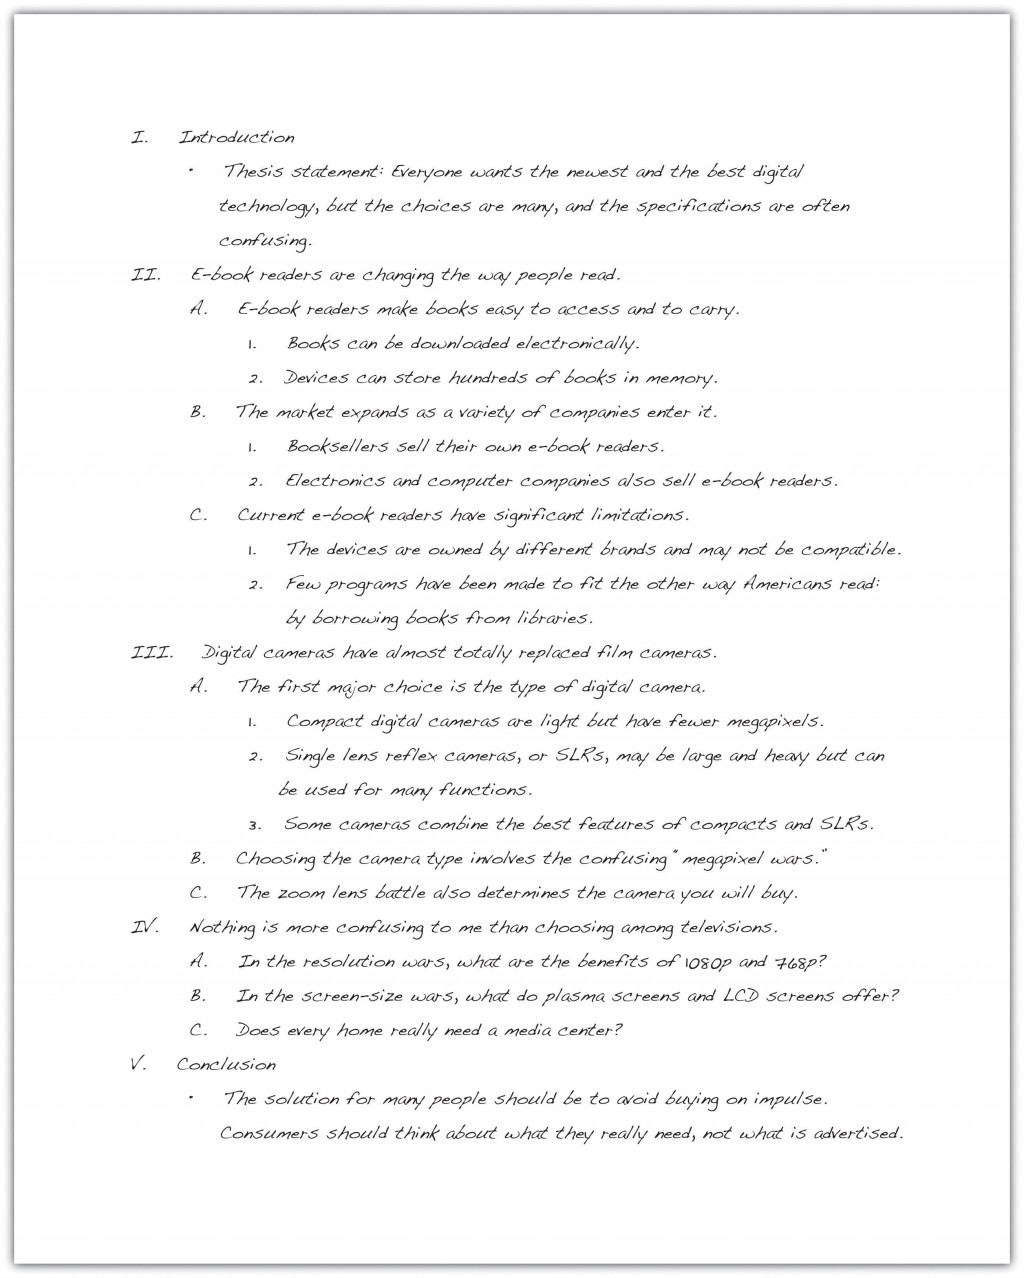 010 How Many Sentences Are In Paragraph For An Essay Example Wondrous A College Should Be Of Each Large